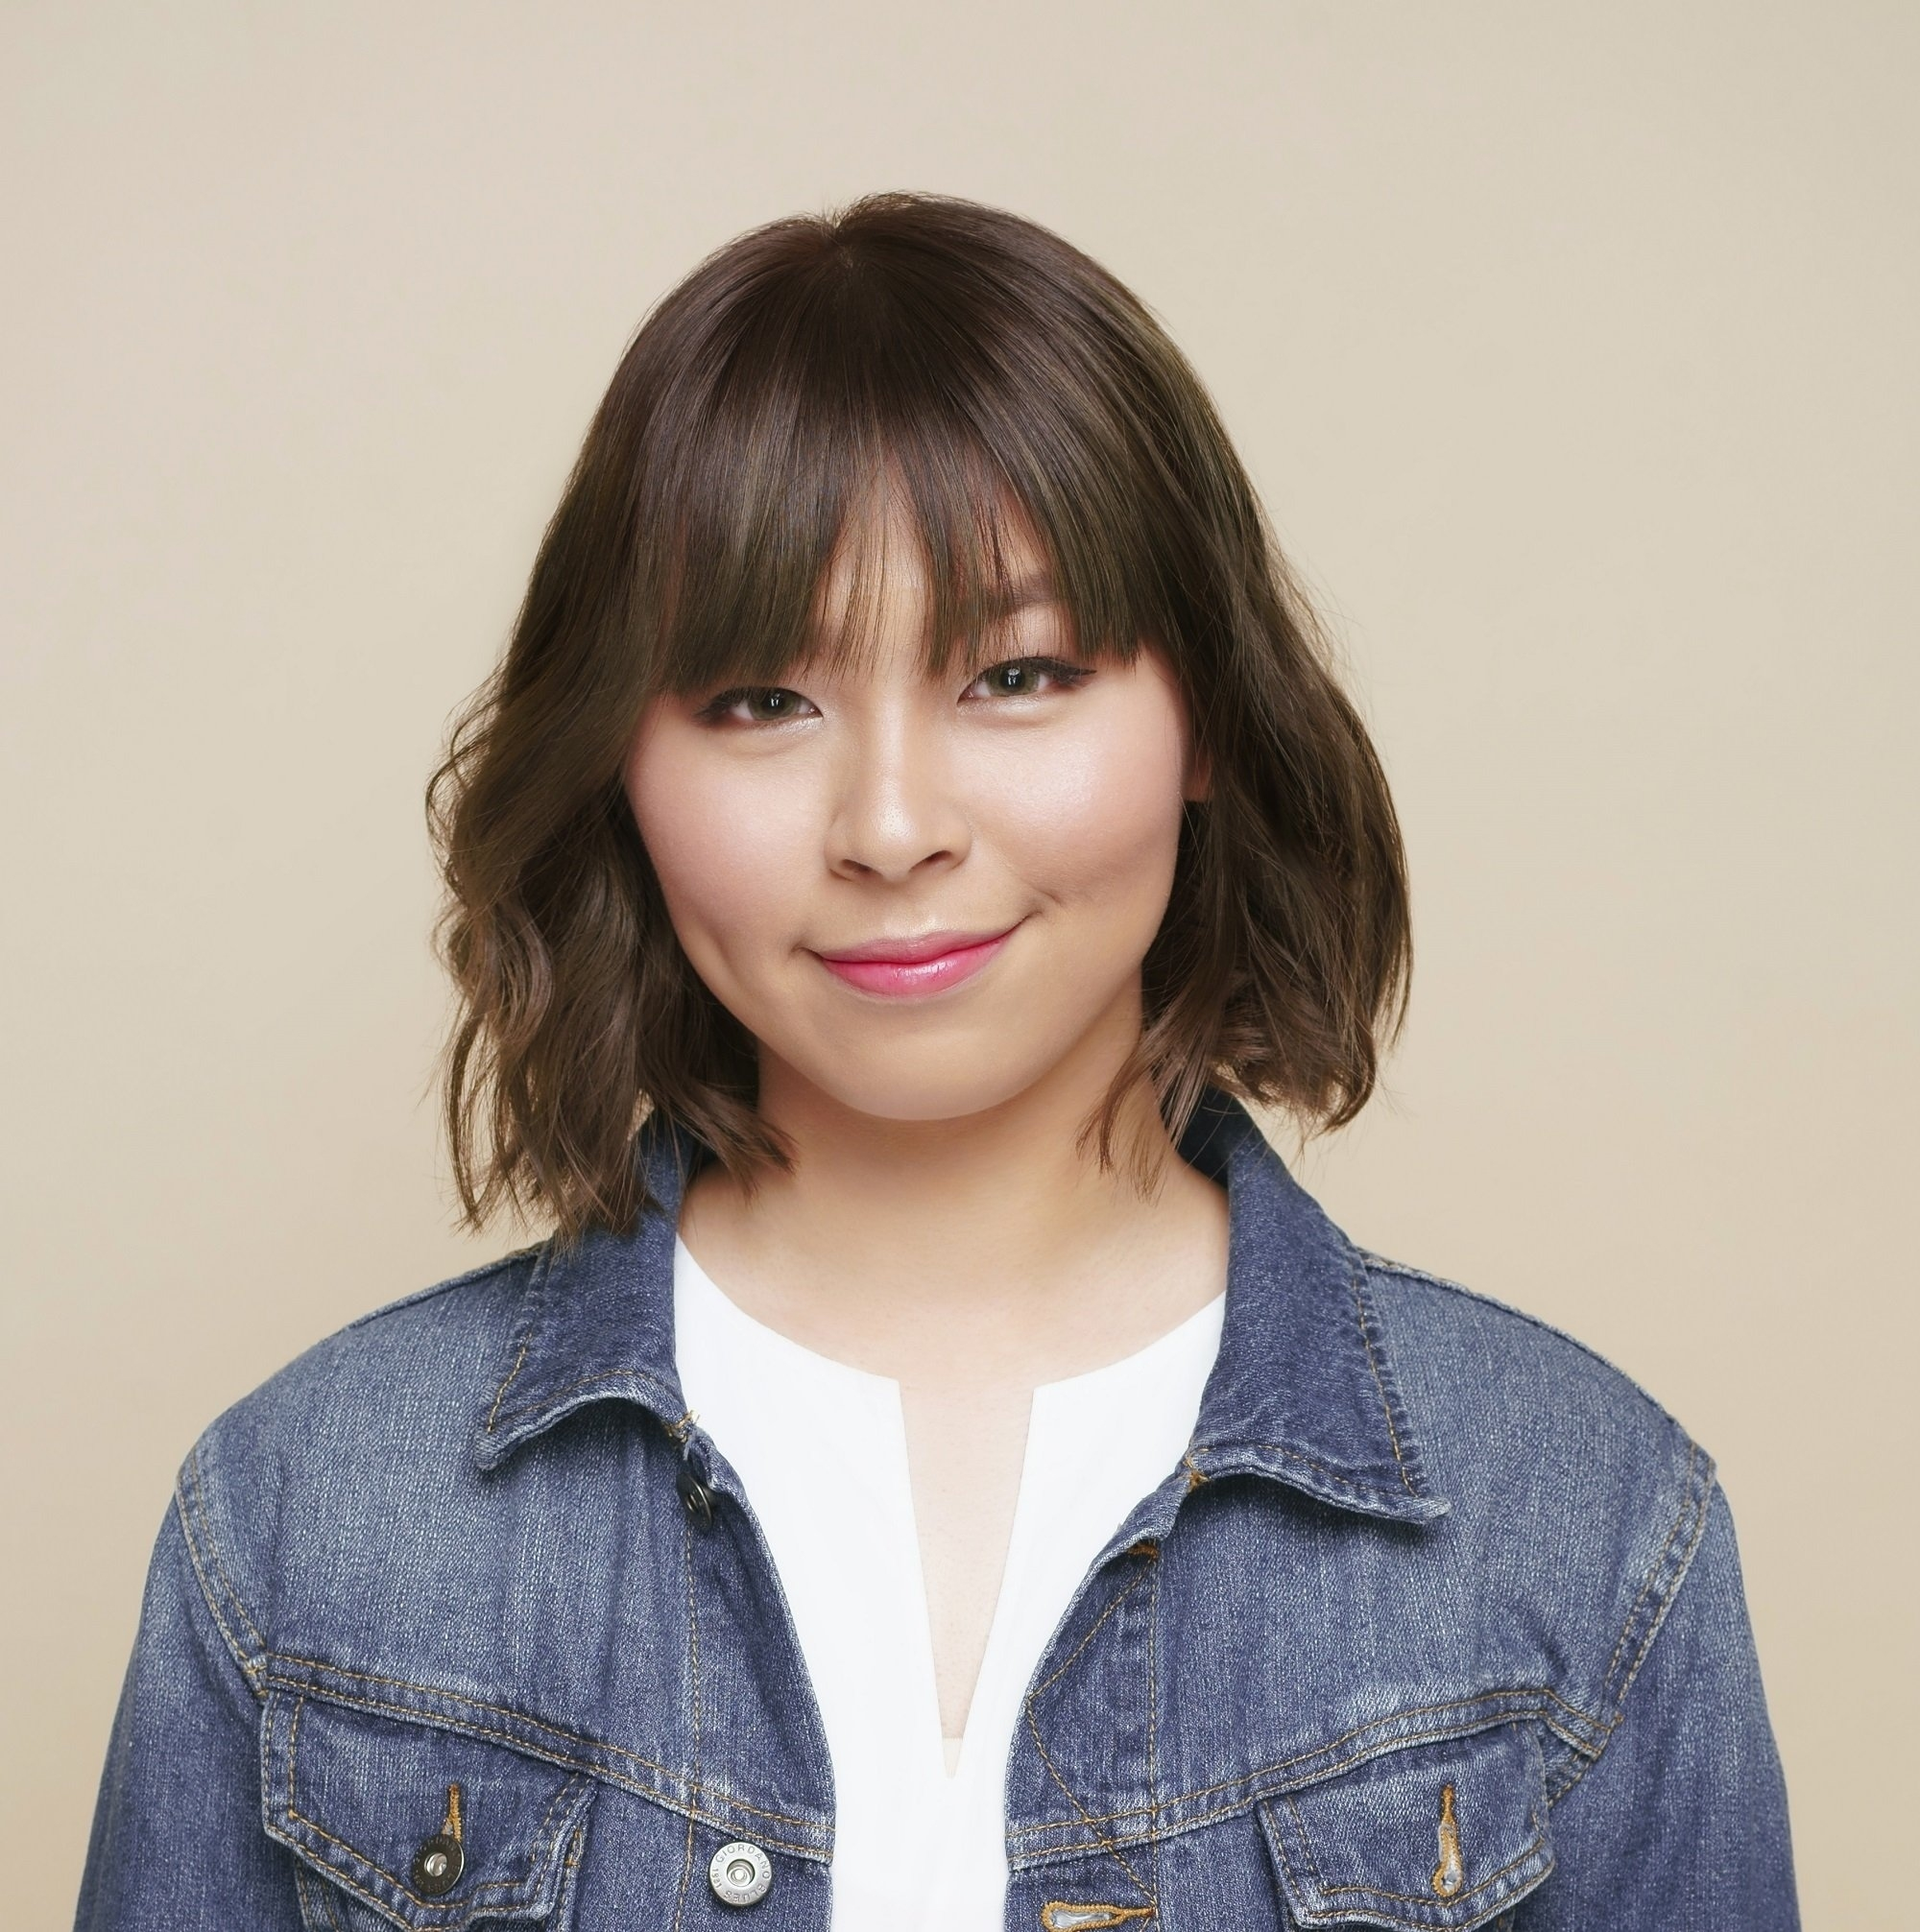 Short Hair For Round Face: Chic Ideas You Need To Try within Superb Asian Bangs Hairstyle For Round Face